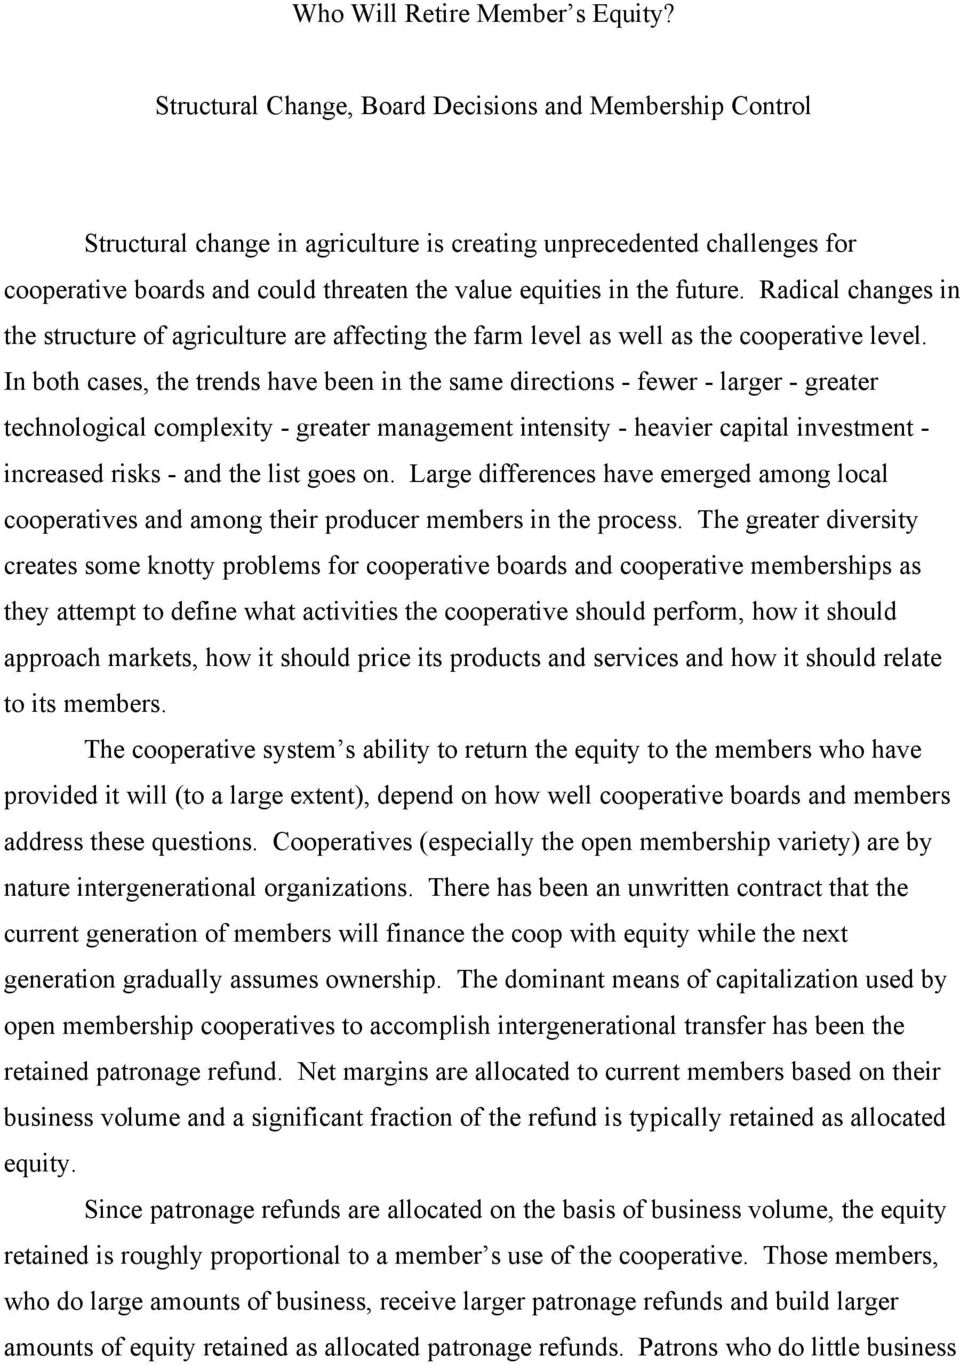 future. Radical changes in the structure of agriculture are affecting the farm level as well as the cooperative level.